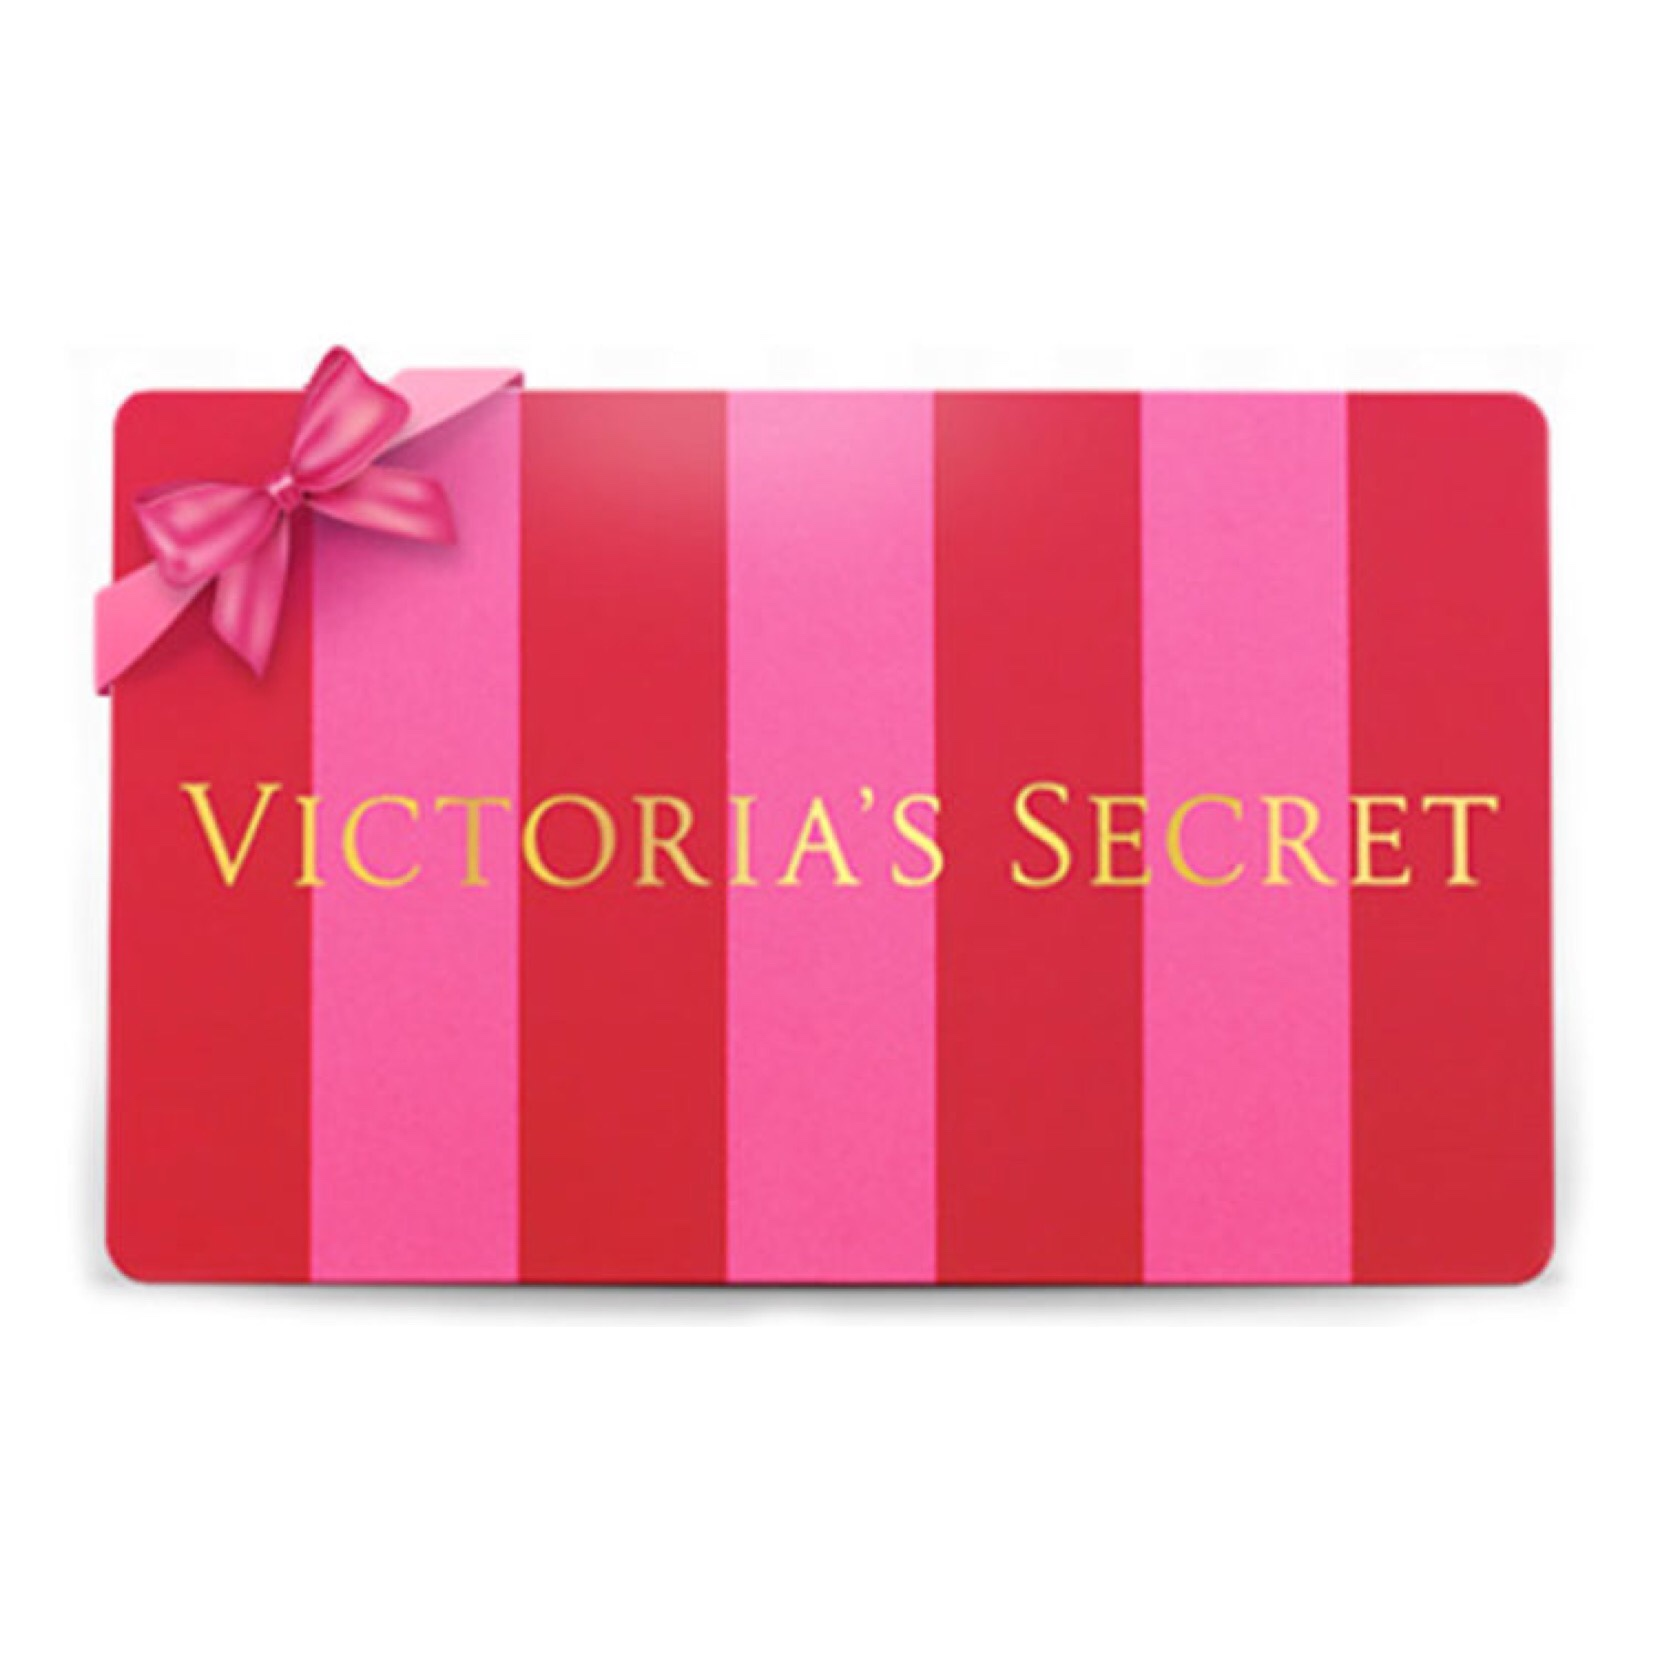 85cb570c089c6 Victoria's Secret Gift Card - $3.12 - Other Gift Cards - Gameflip